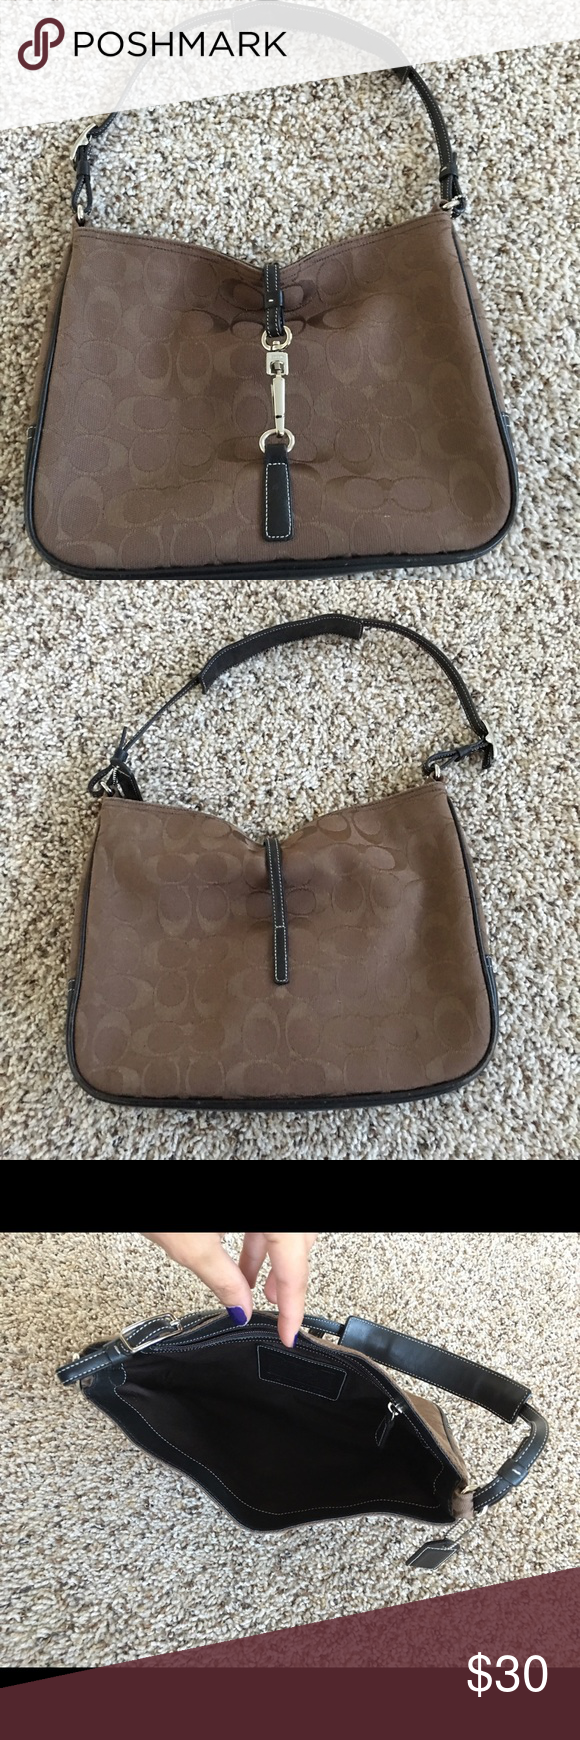 Coach Brown Handbag Brown/Black Used a few times. Still in very good condition. Coach Bags Shoulder Bags